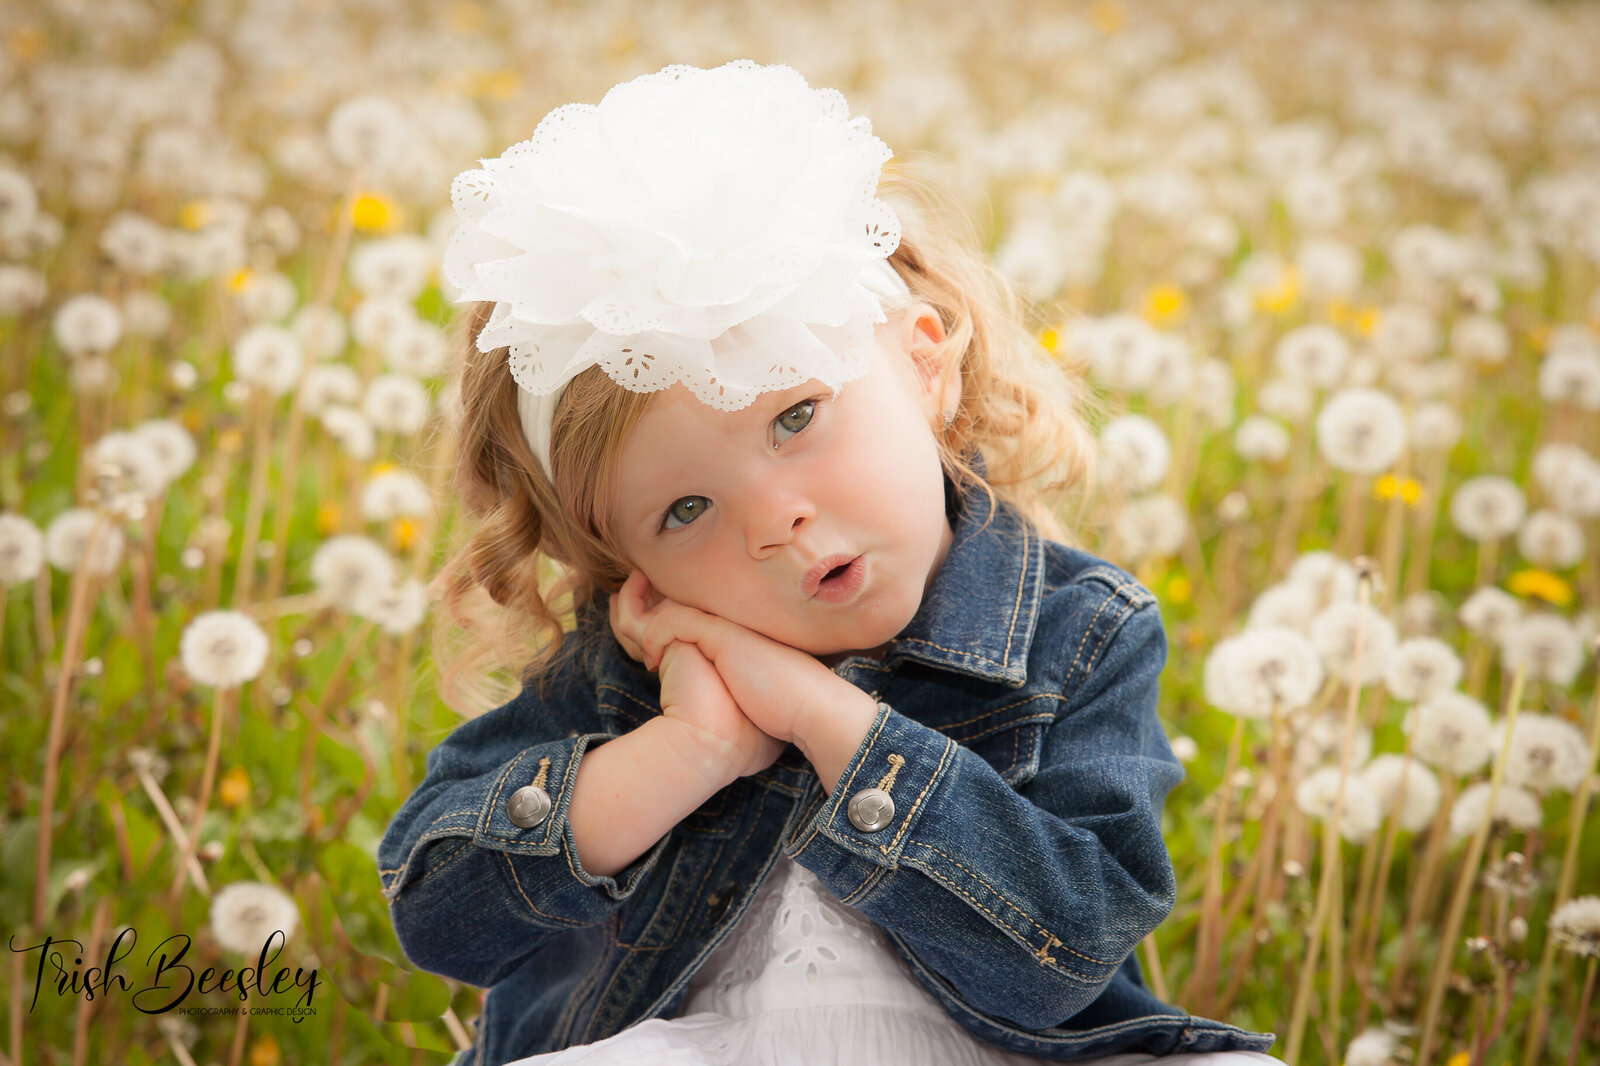 Trish Beesley Photography provides photographic services including Family Photography, Photography for  children and teenagers, as well as Headshots and branding sessions, modelling portfolio's,  cake smashes, event photography and school photos for preschools. Operating from Simcoe County  in the Barrie and Innisfil and surrounding areas Trish Beesley Photography and staff will travel within the GTA and Surrounding areas.